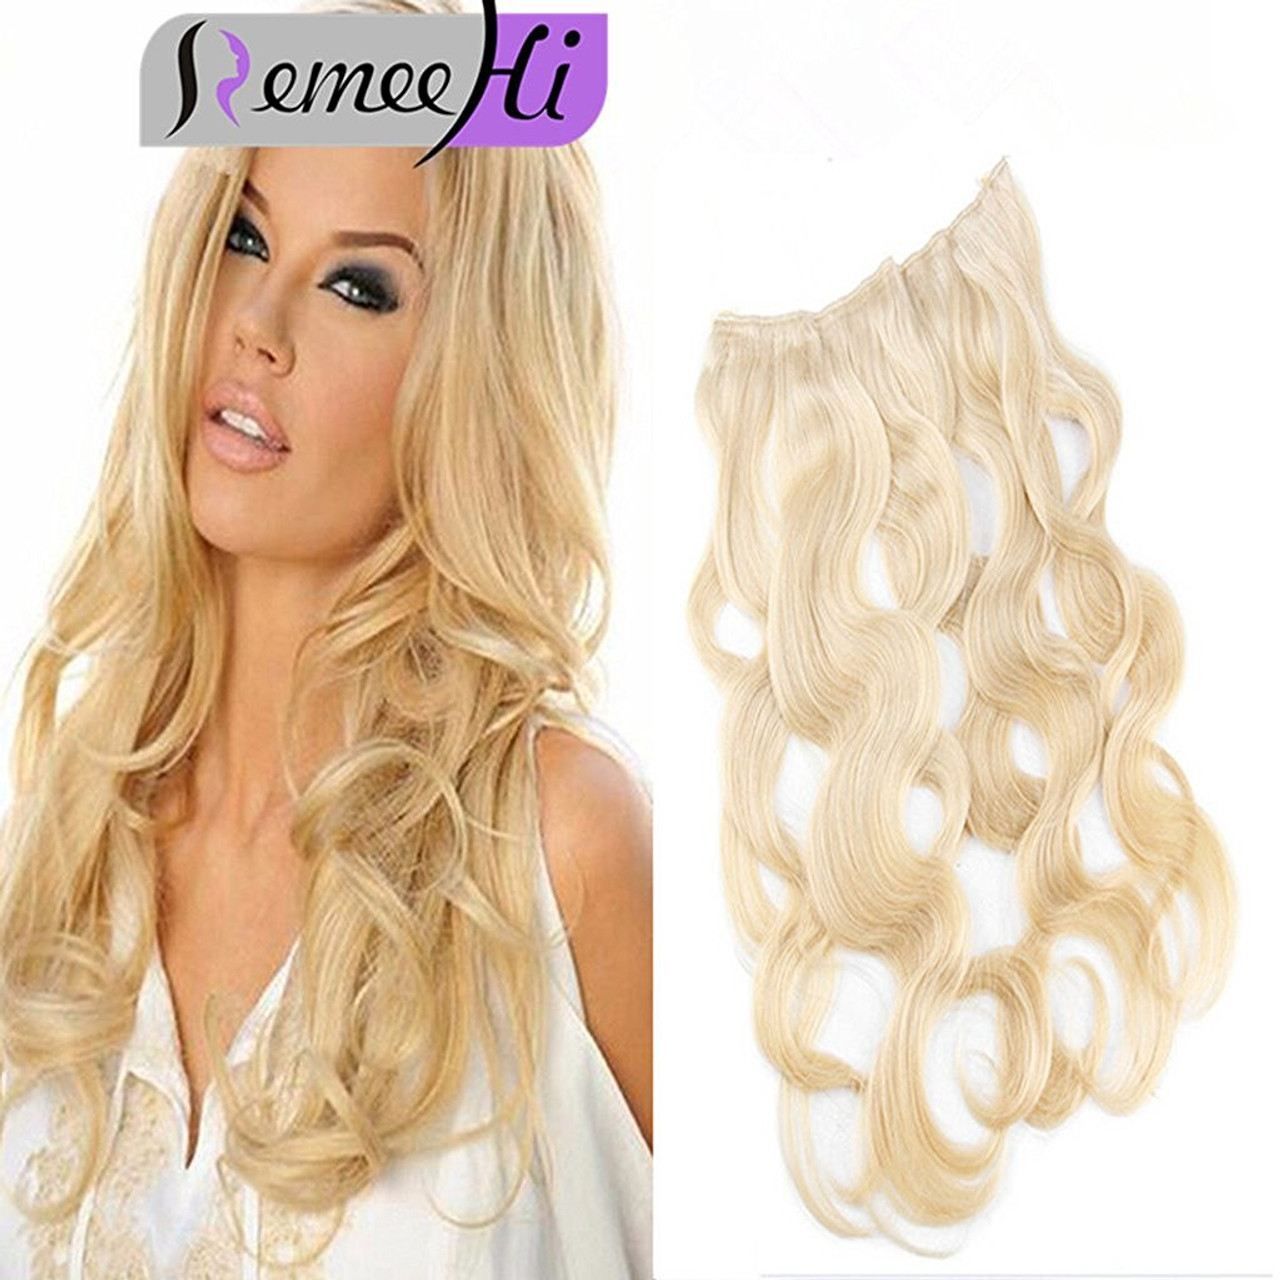 Remeehi body wave secret halo hair extensions invisible wire flip remeehi body wave secret halo hair extensions invisible wire flip remy human hair extensions 80g width pmusecretfo Image collections